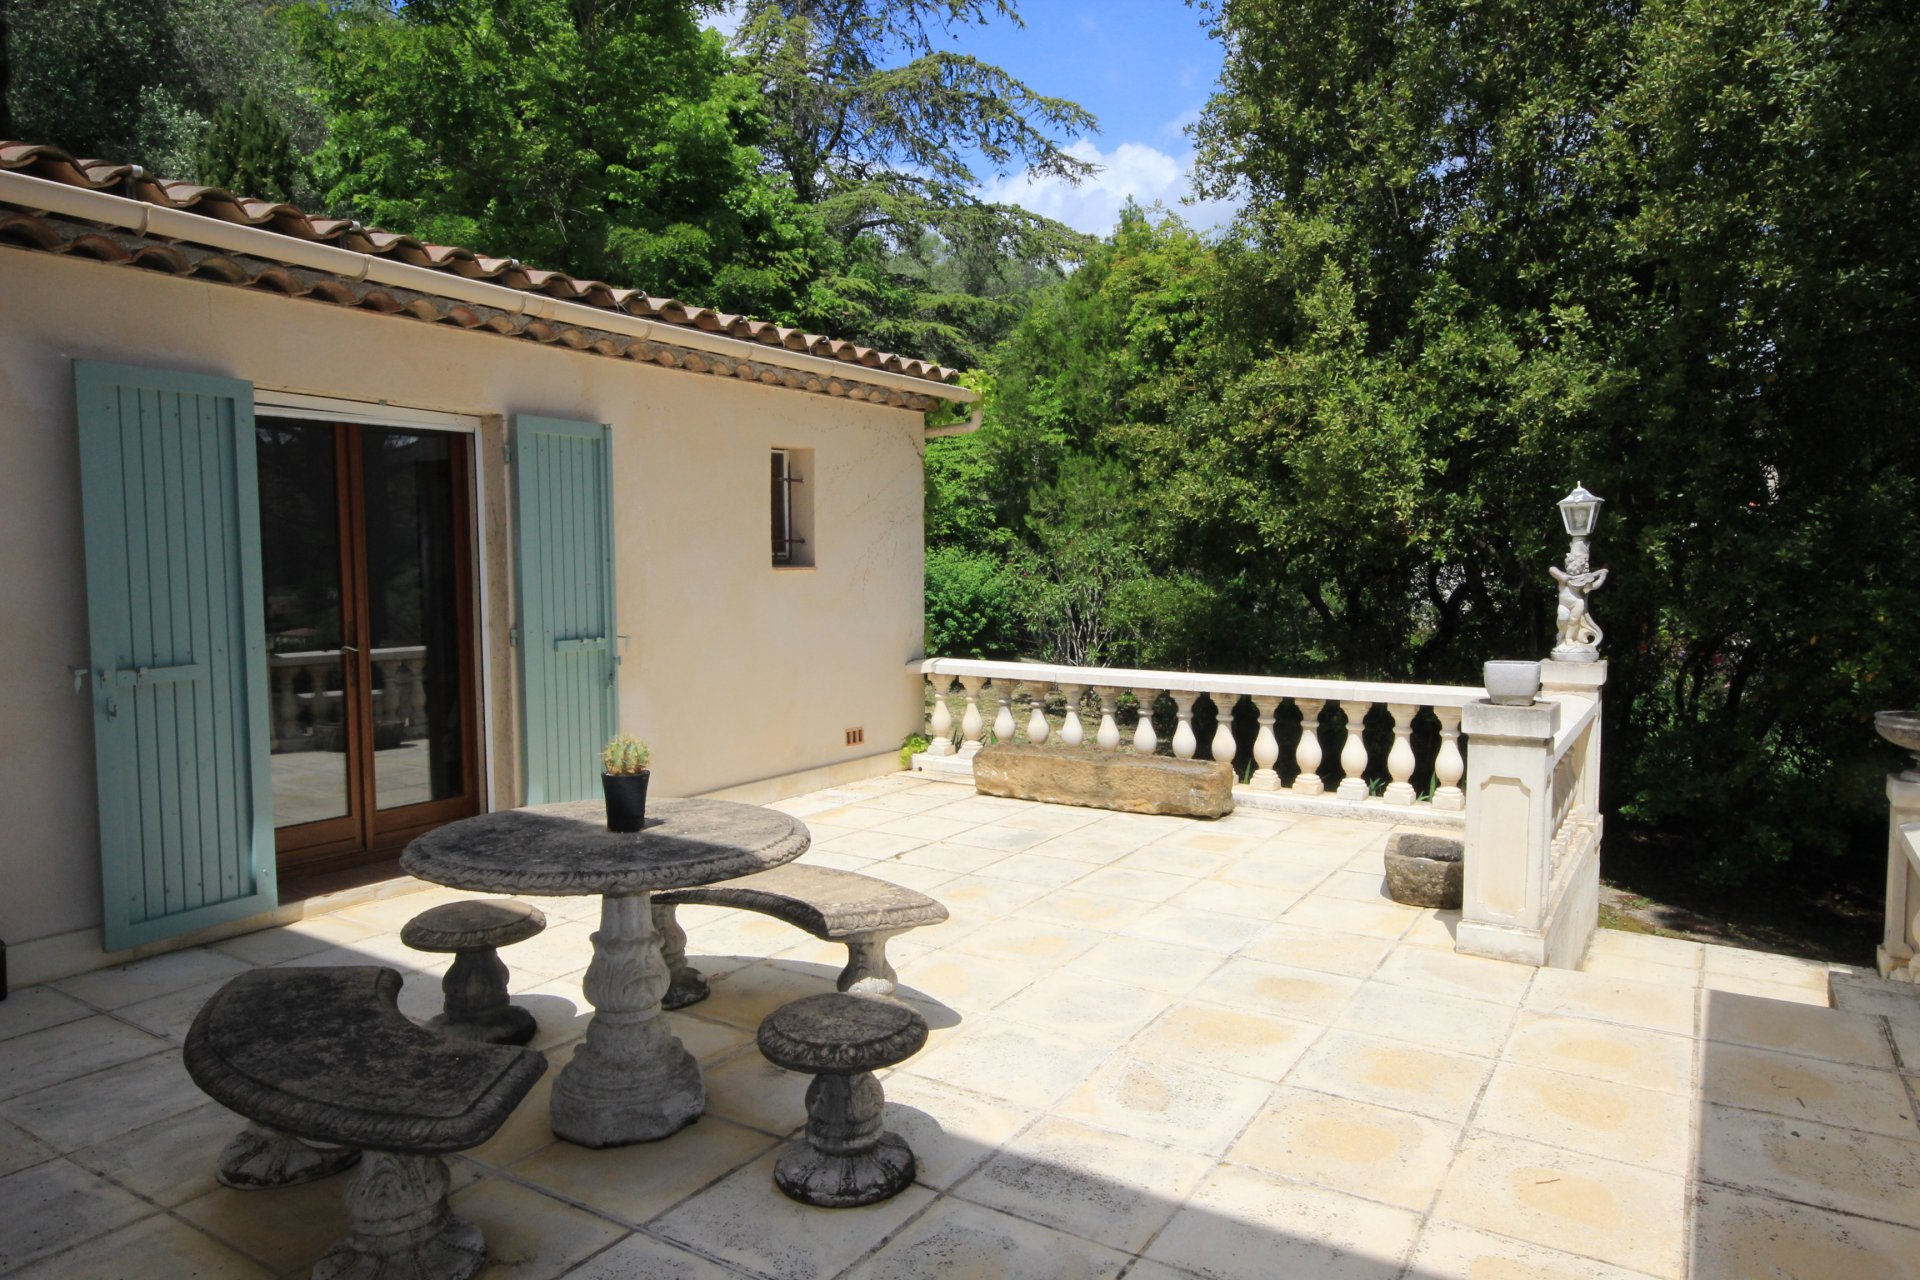 Provencal villa with character and charm